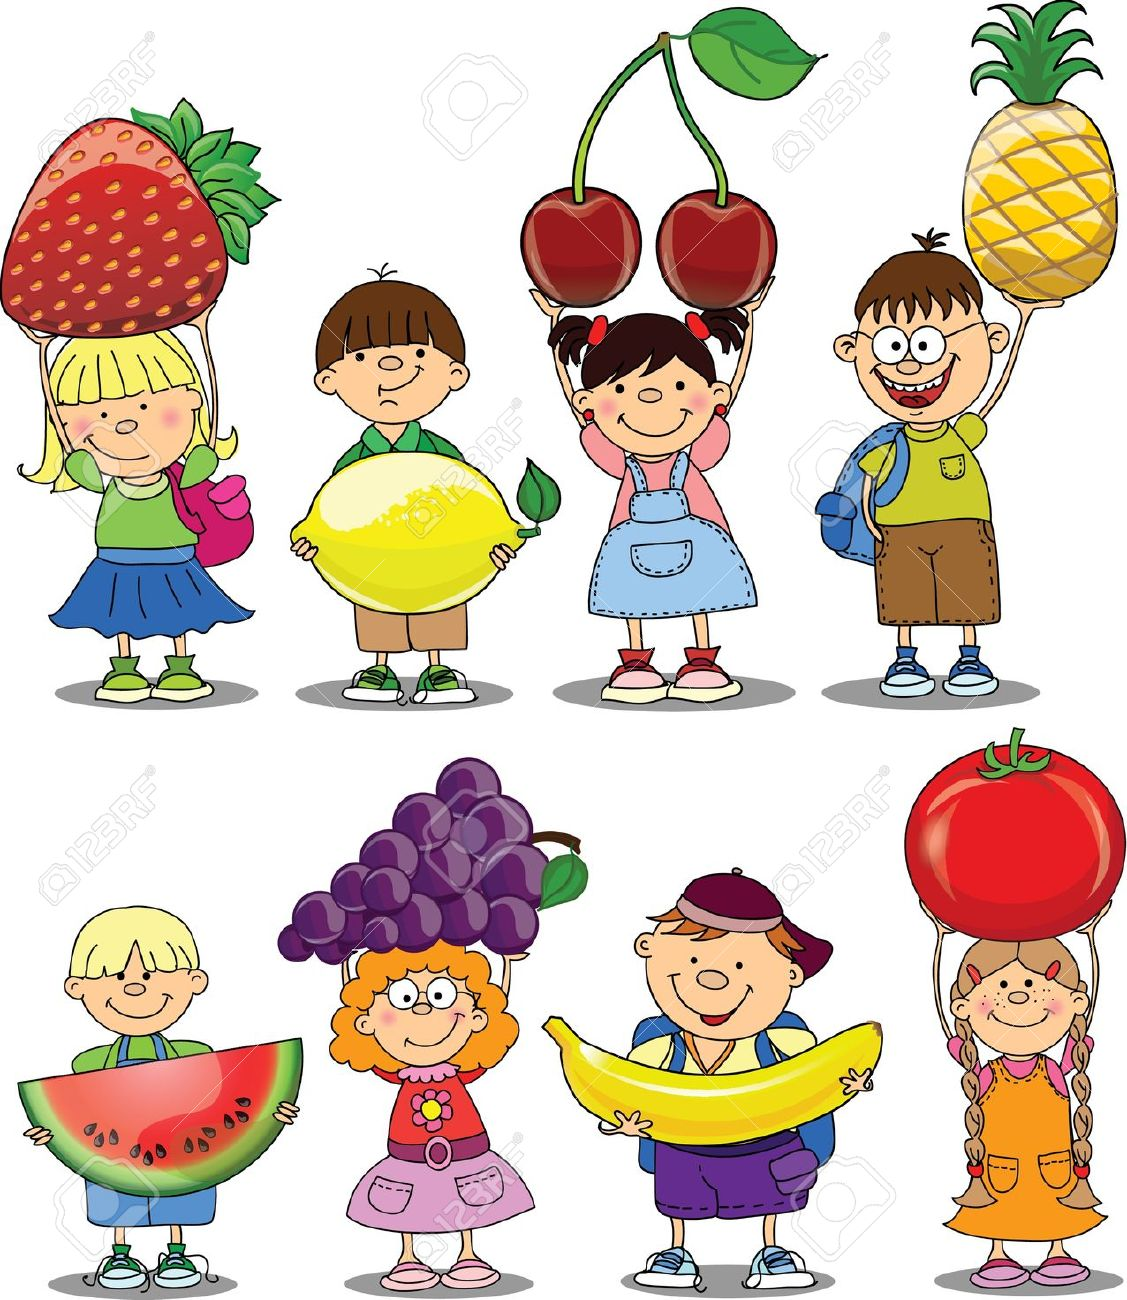 Healthy kids clipart graphic library download Kids Eating Healthy Clipart | Free download best Kids Eating ... graphic library download